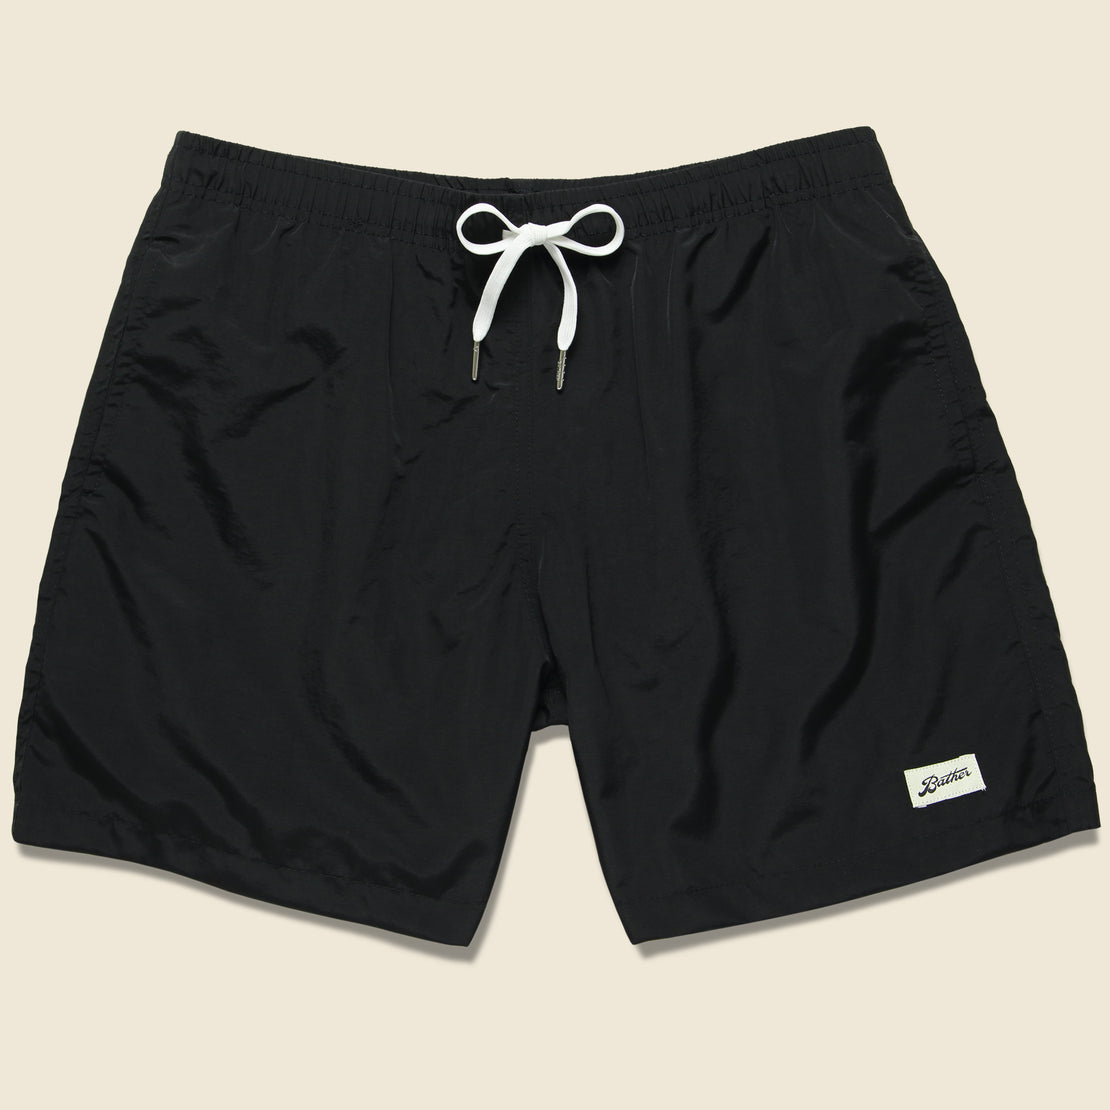 Bather Trunk Co. Solid Swim Trunk - Black